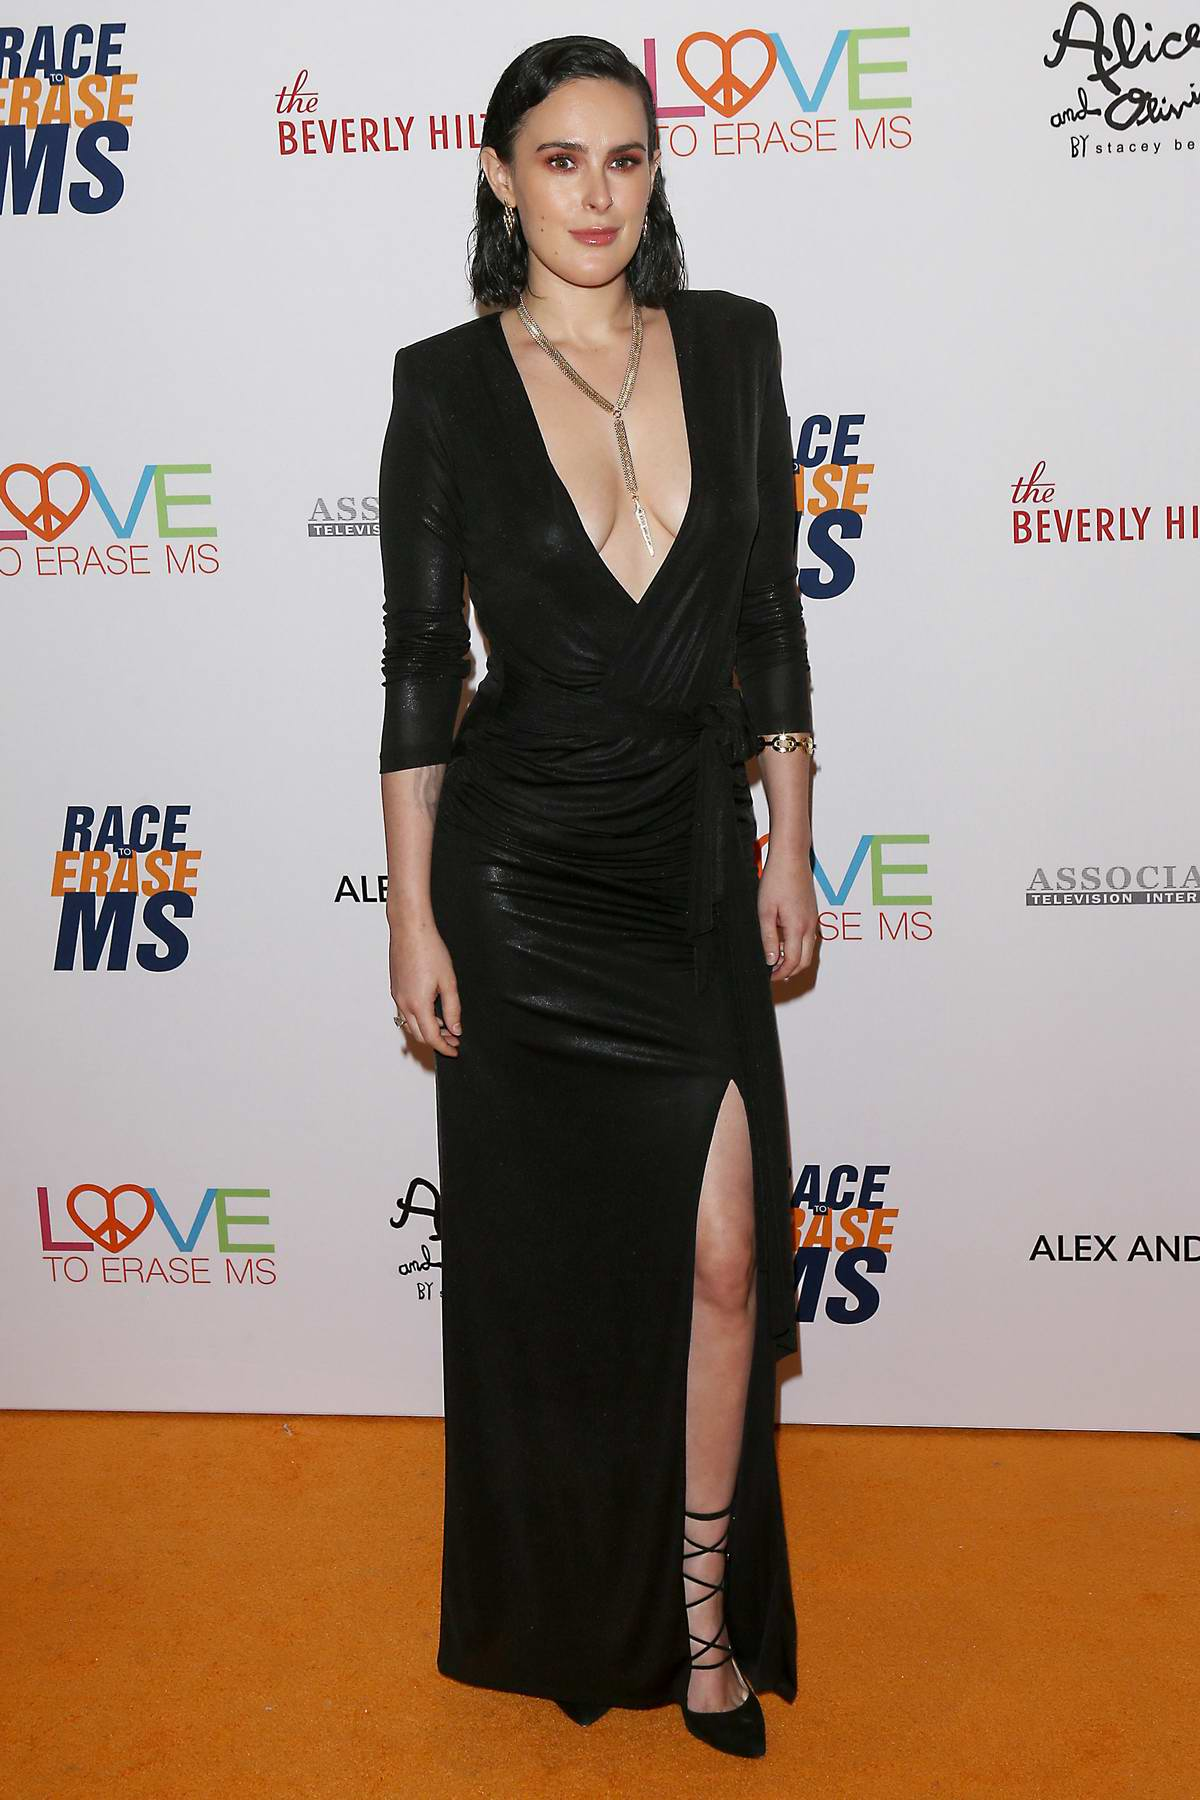 Rumer Willis attends the 26th Annual Race to Erase MS GALA held at the Beverly Hilton Hotel in Beverly Hills, Los Angeles